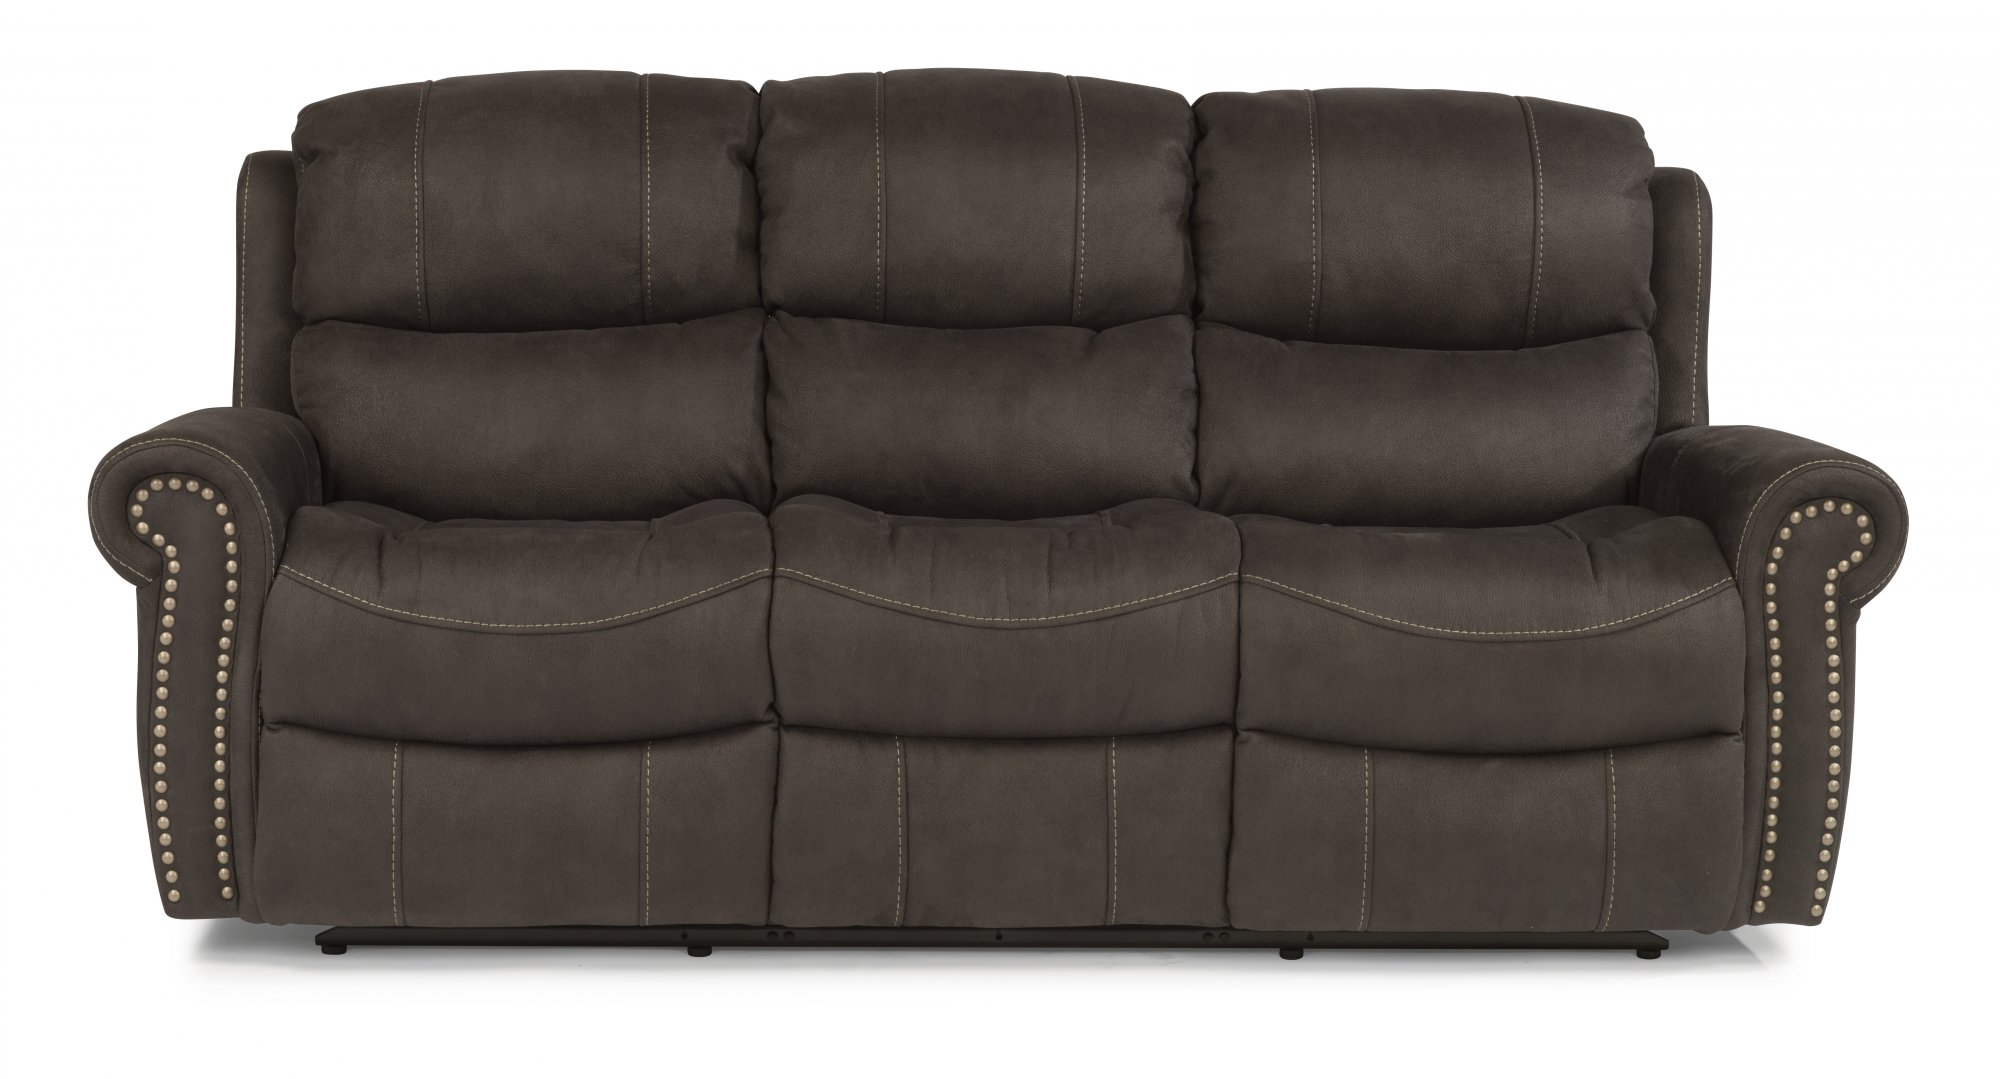 walden flexsteel com rh flexsteel com flexsteel reclining sofa warranty flexsteel reclining sofa disassemble and assemble